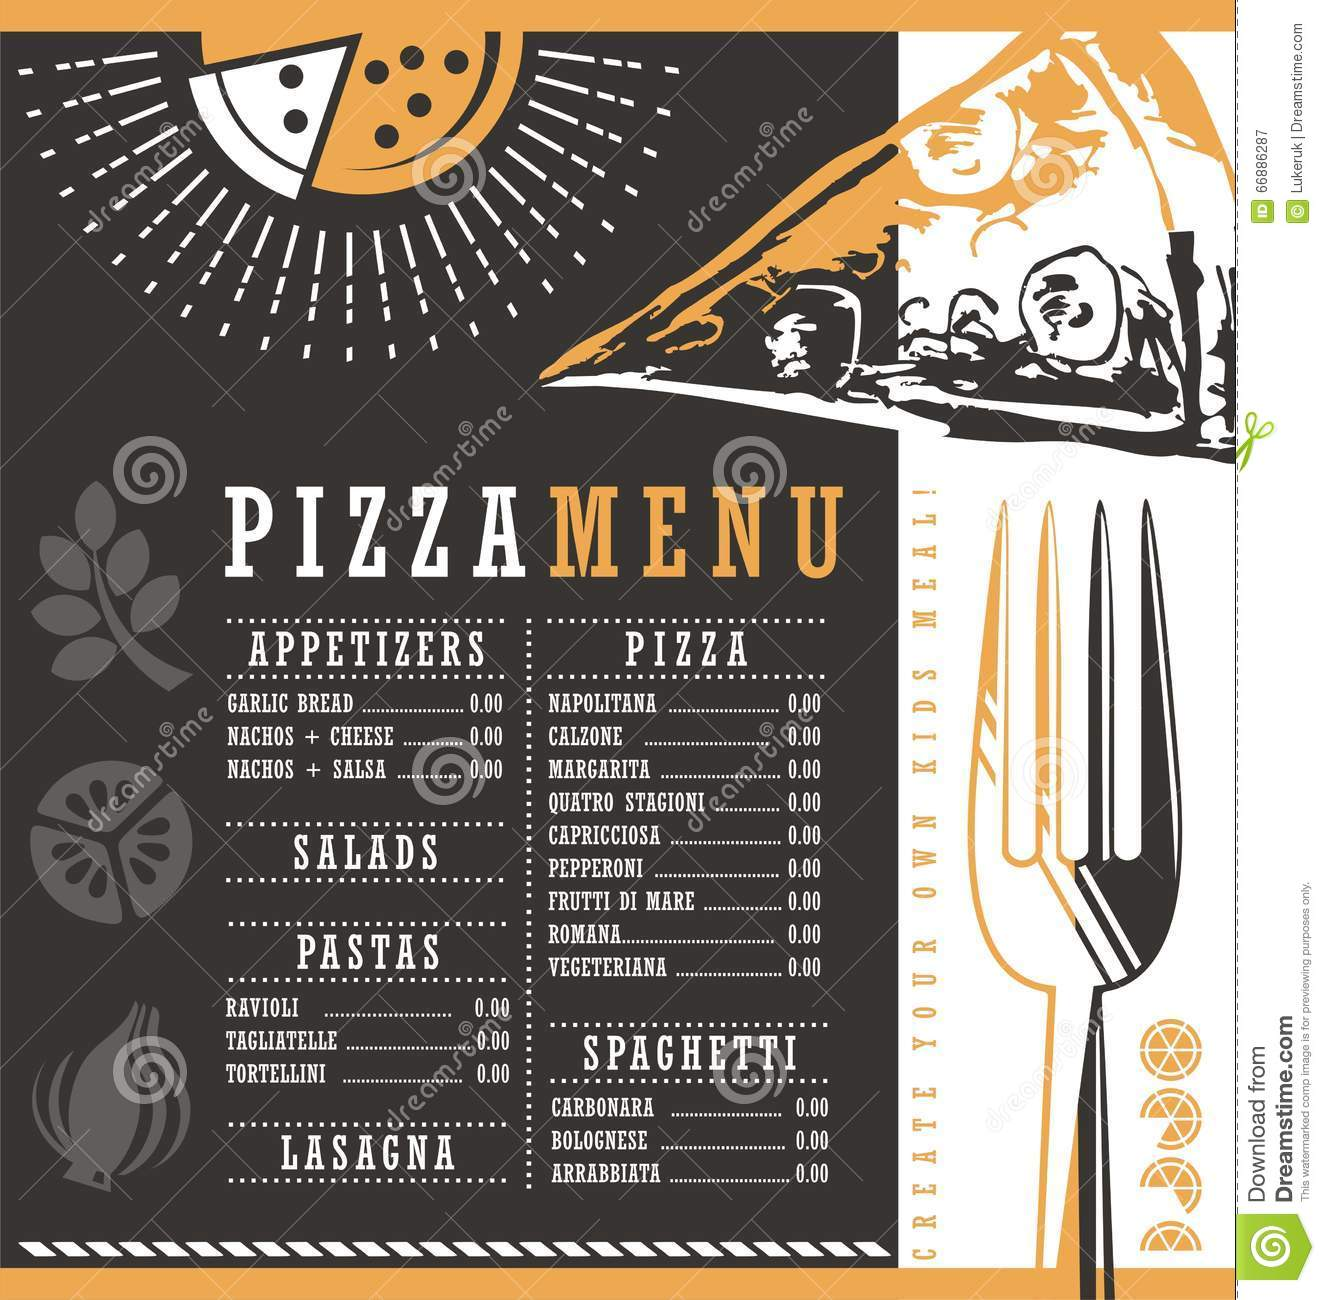 Pizzeria menu graphic design idea stock vector image